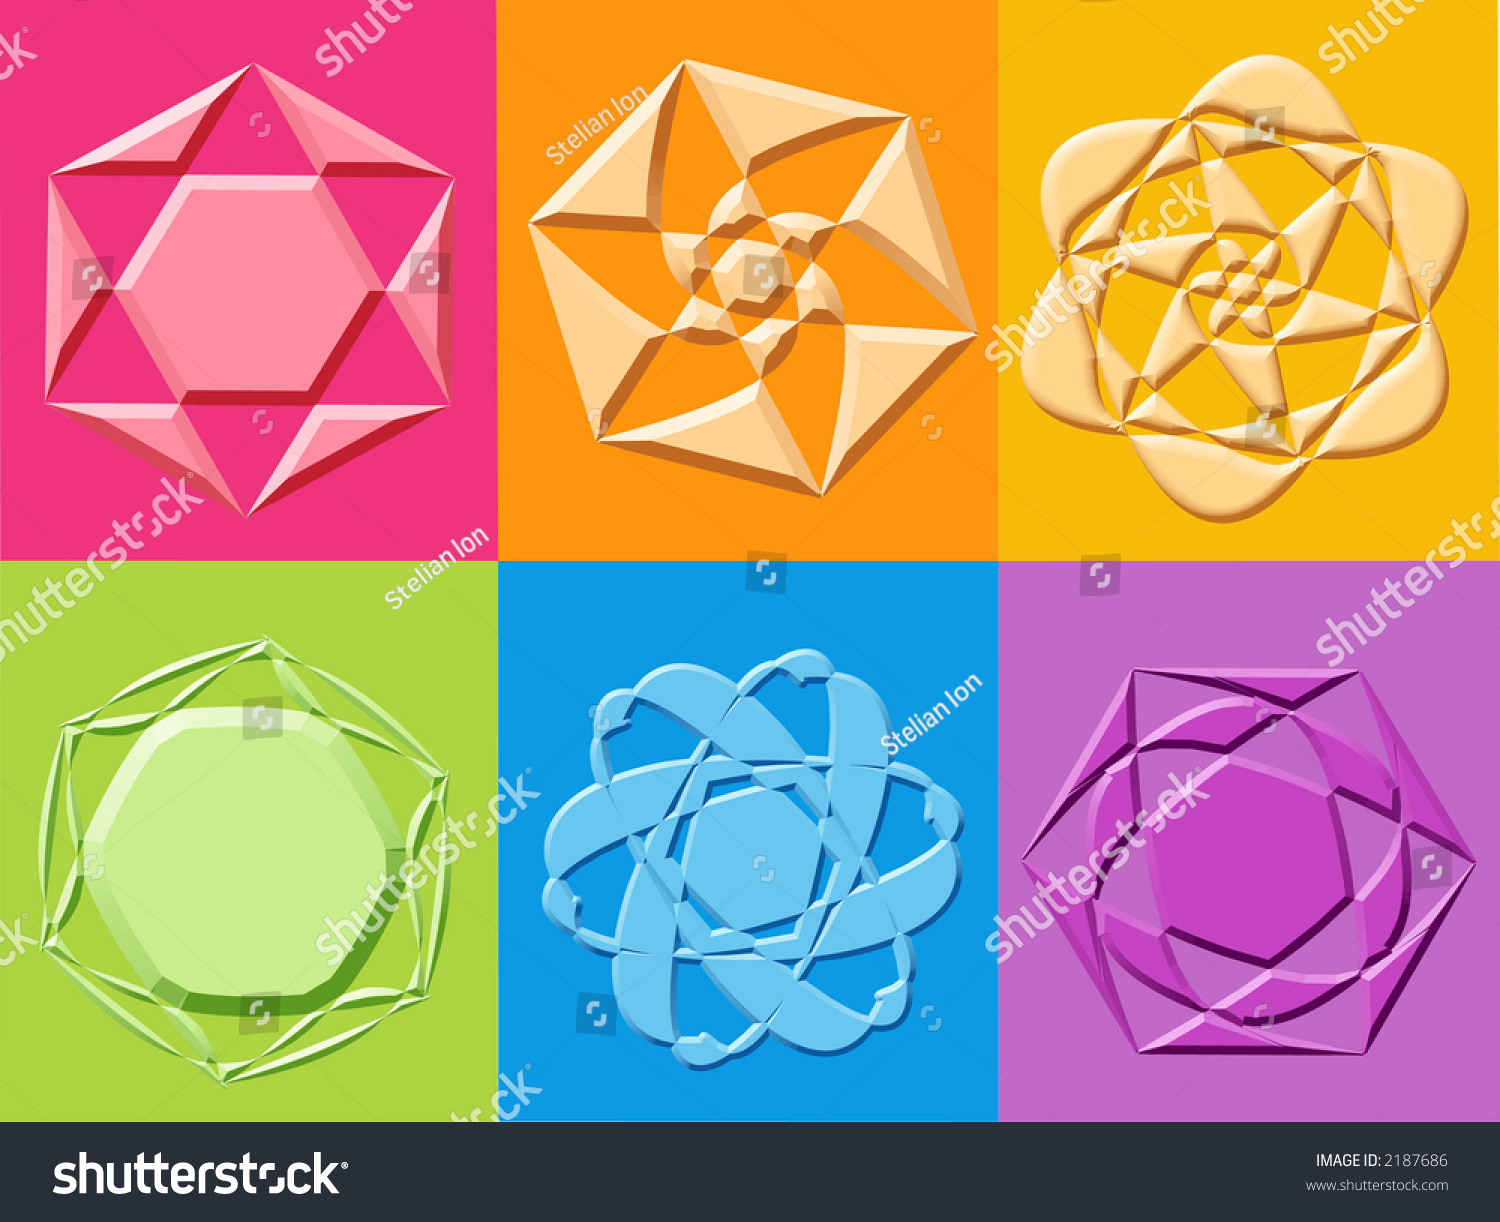 3 D Yantra Stars Flowers Symbols Computer Stock Illustration 2187686